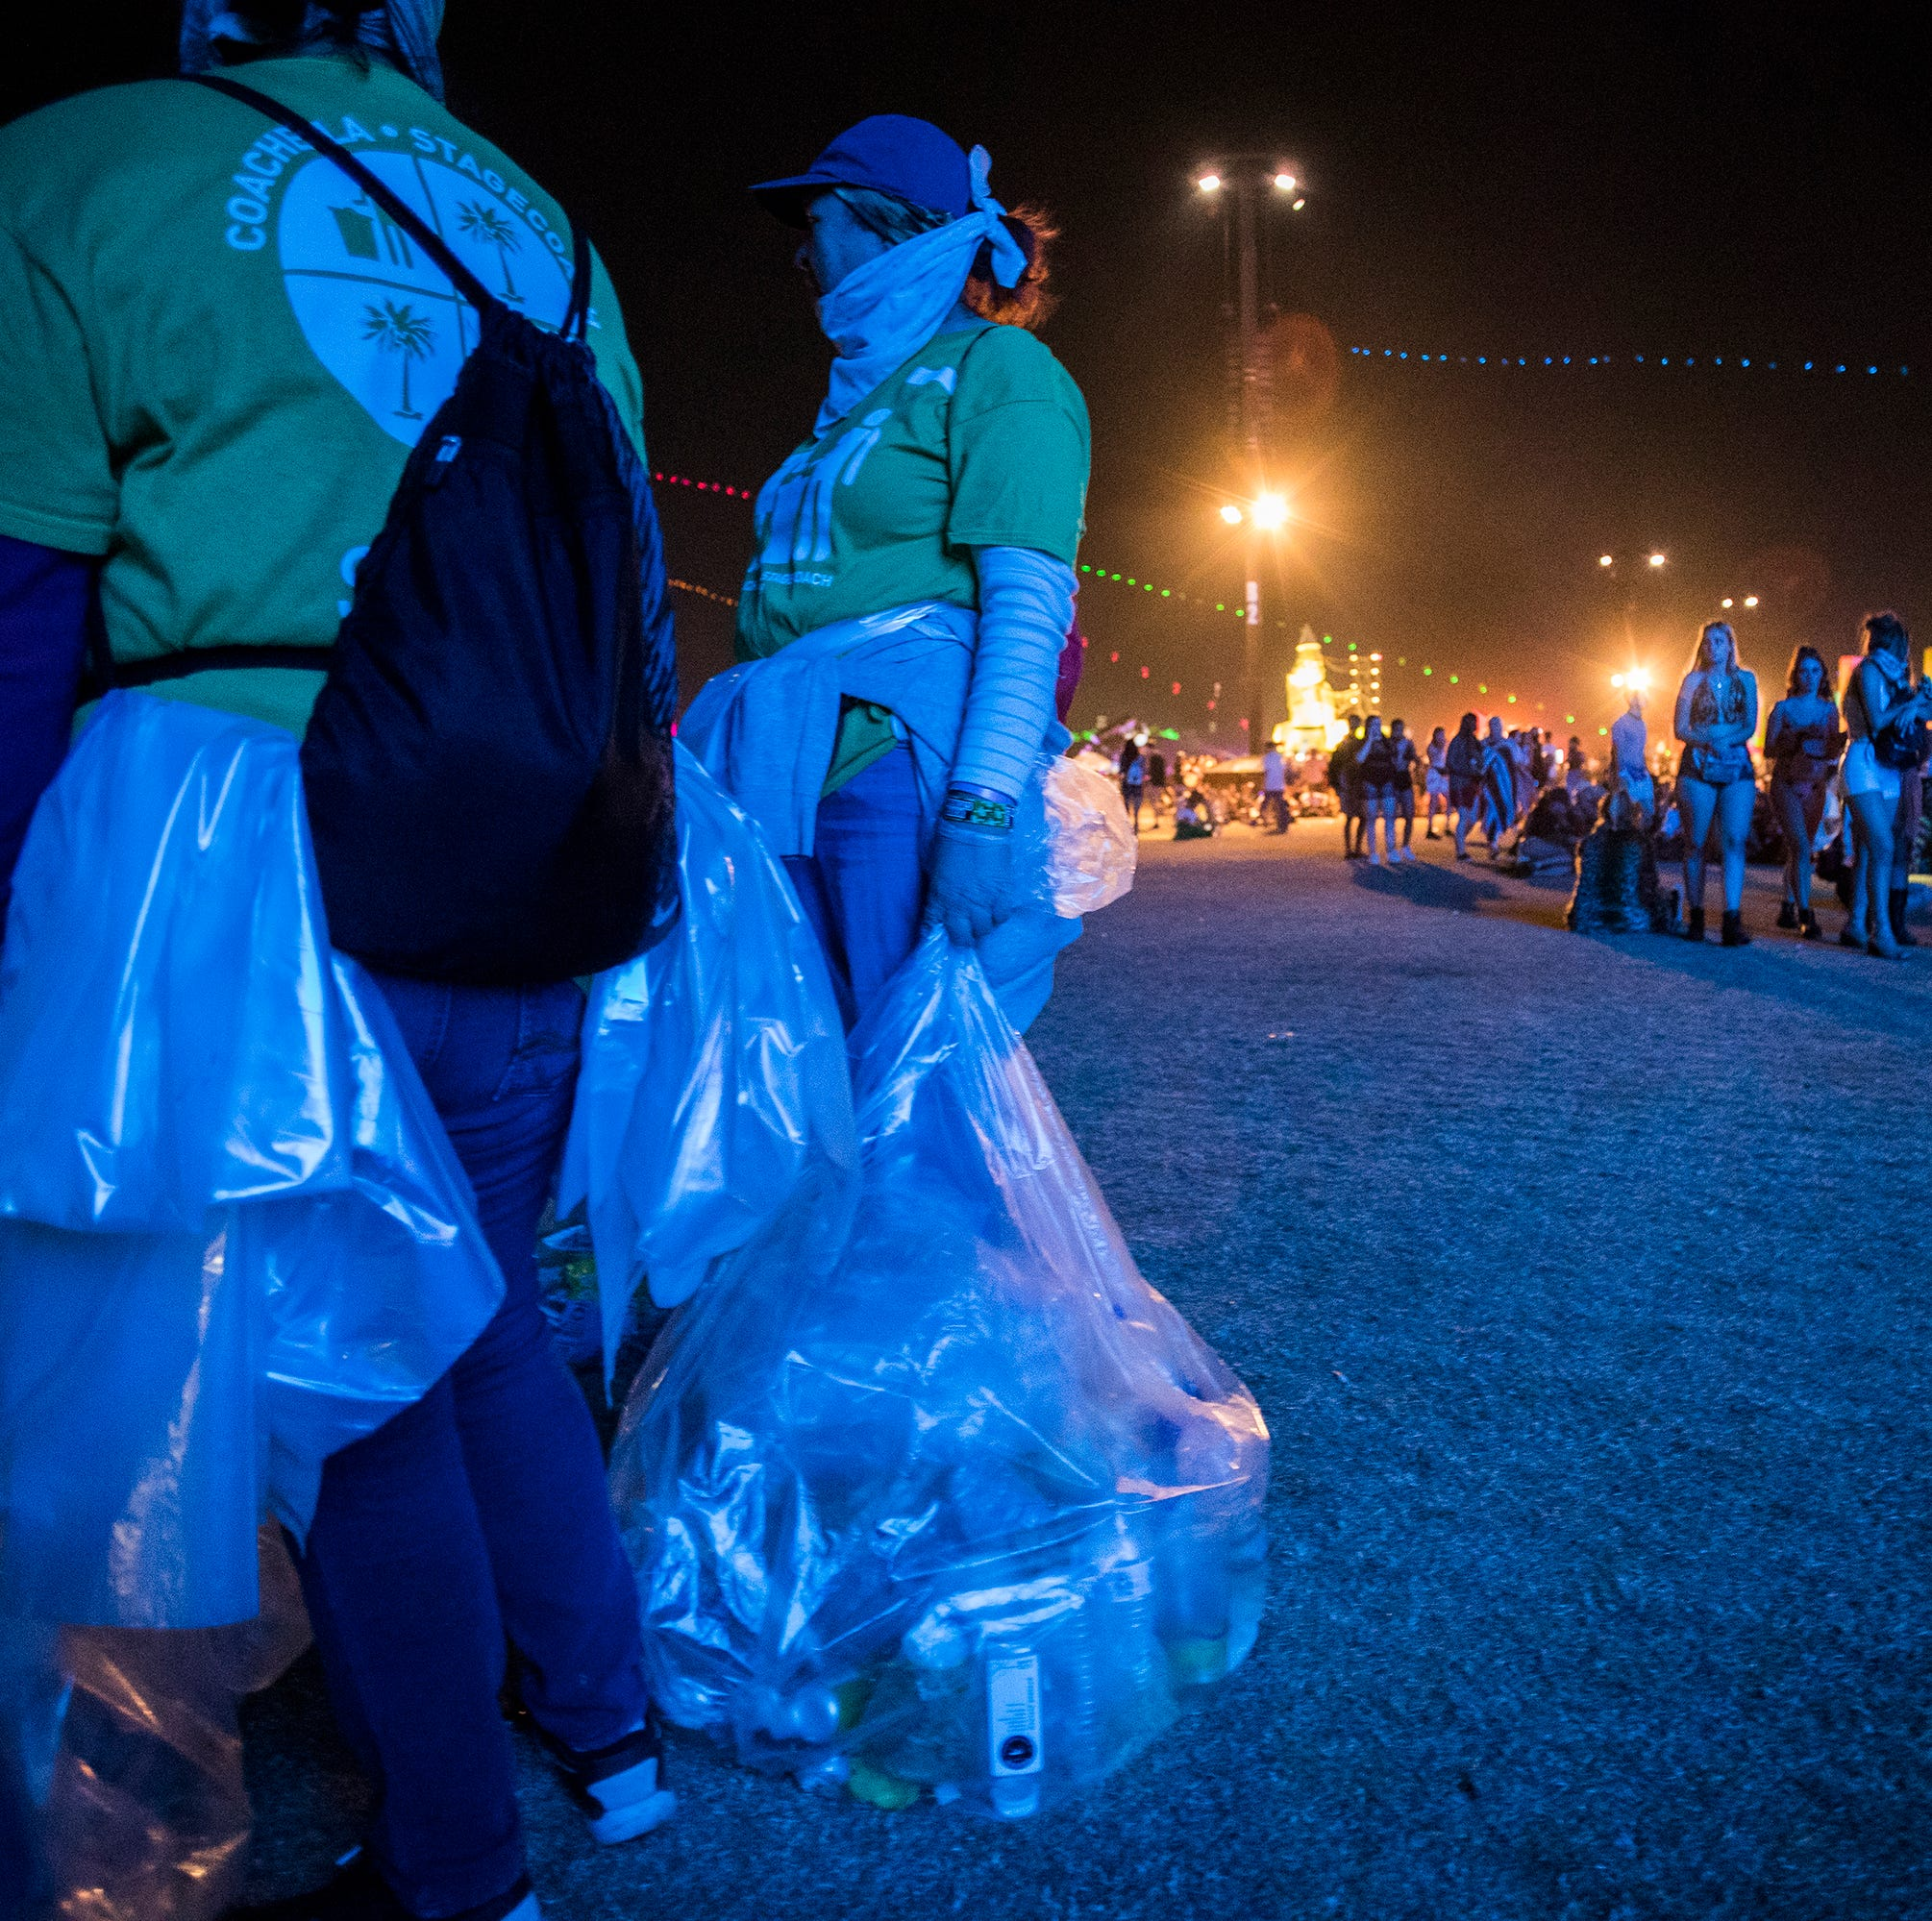 As grape industry changes, farmworkers pick up extra shifts collecting trash at Coachella festival